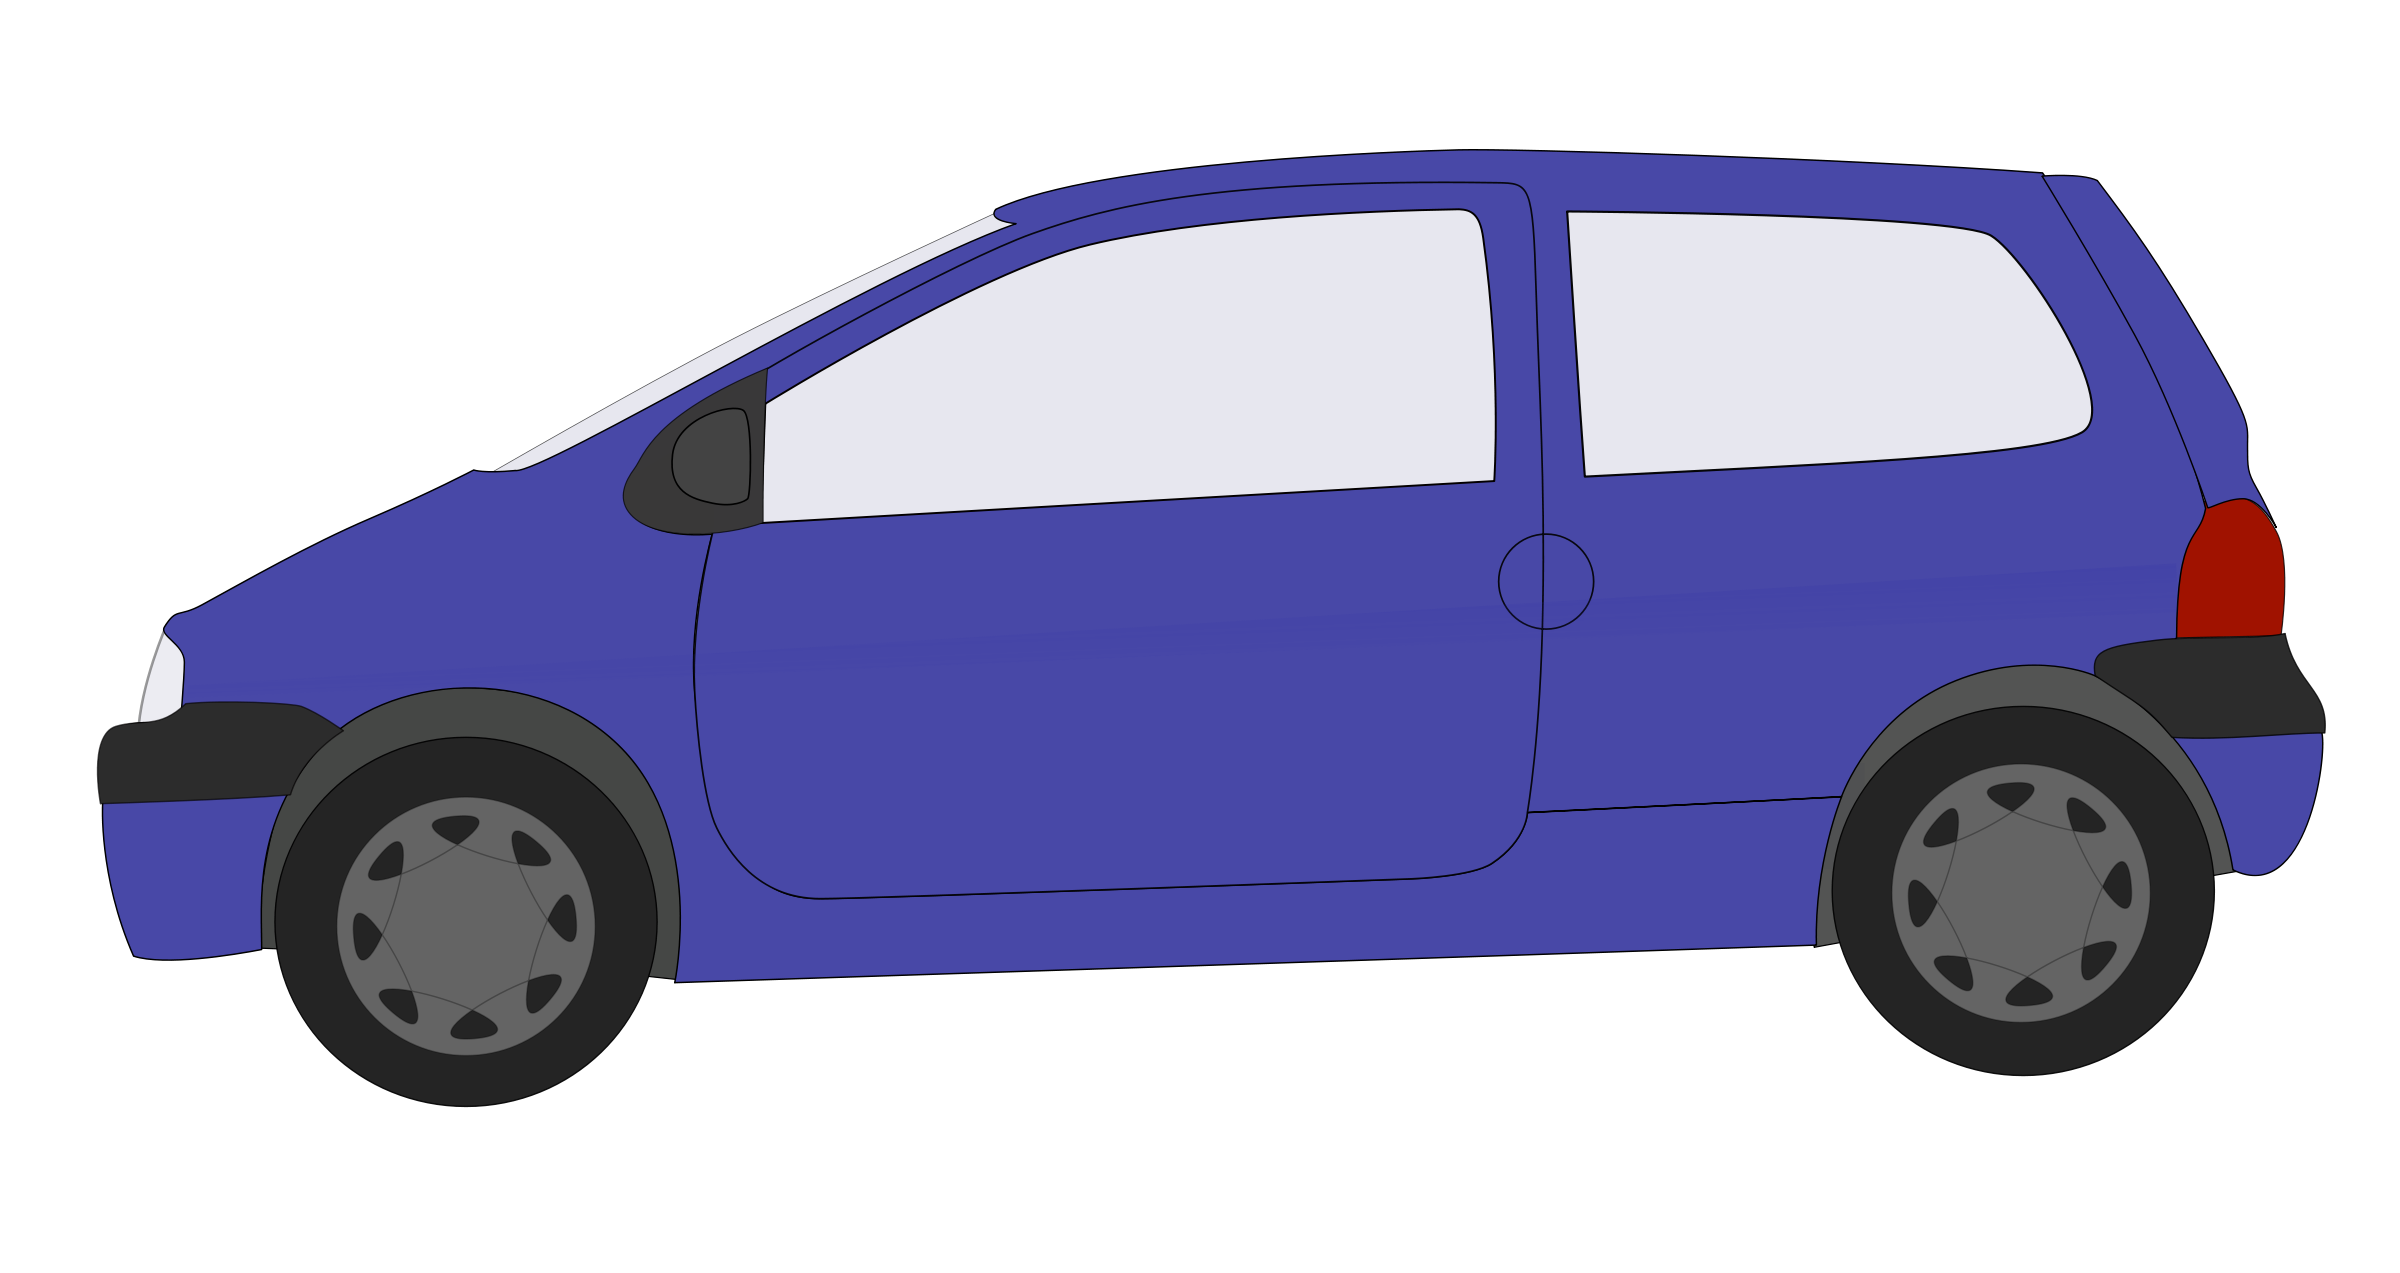 Side of a car clipart svg free download Free Car Animated, Download Free Clip Art, Free Clip Art on Clipart ... svg free download